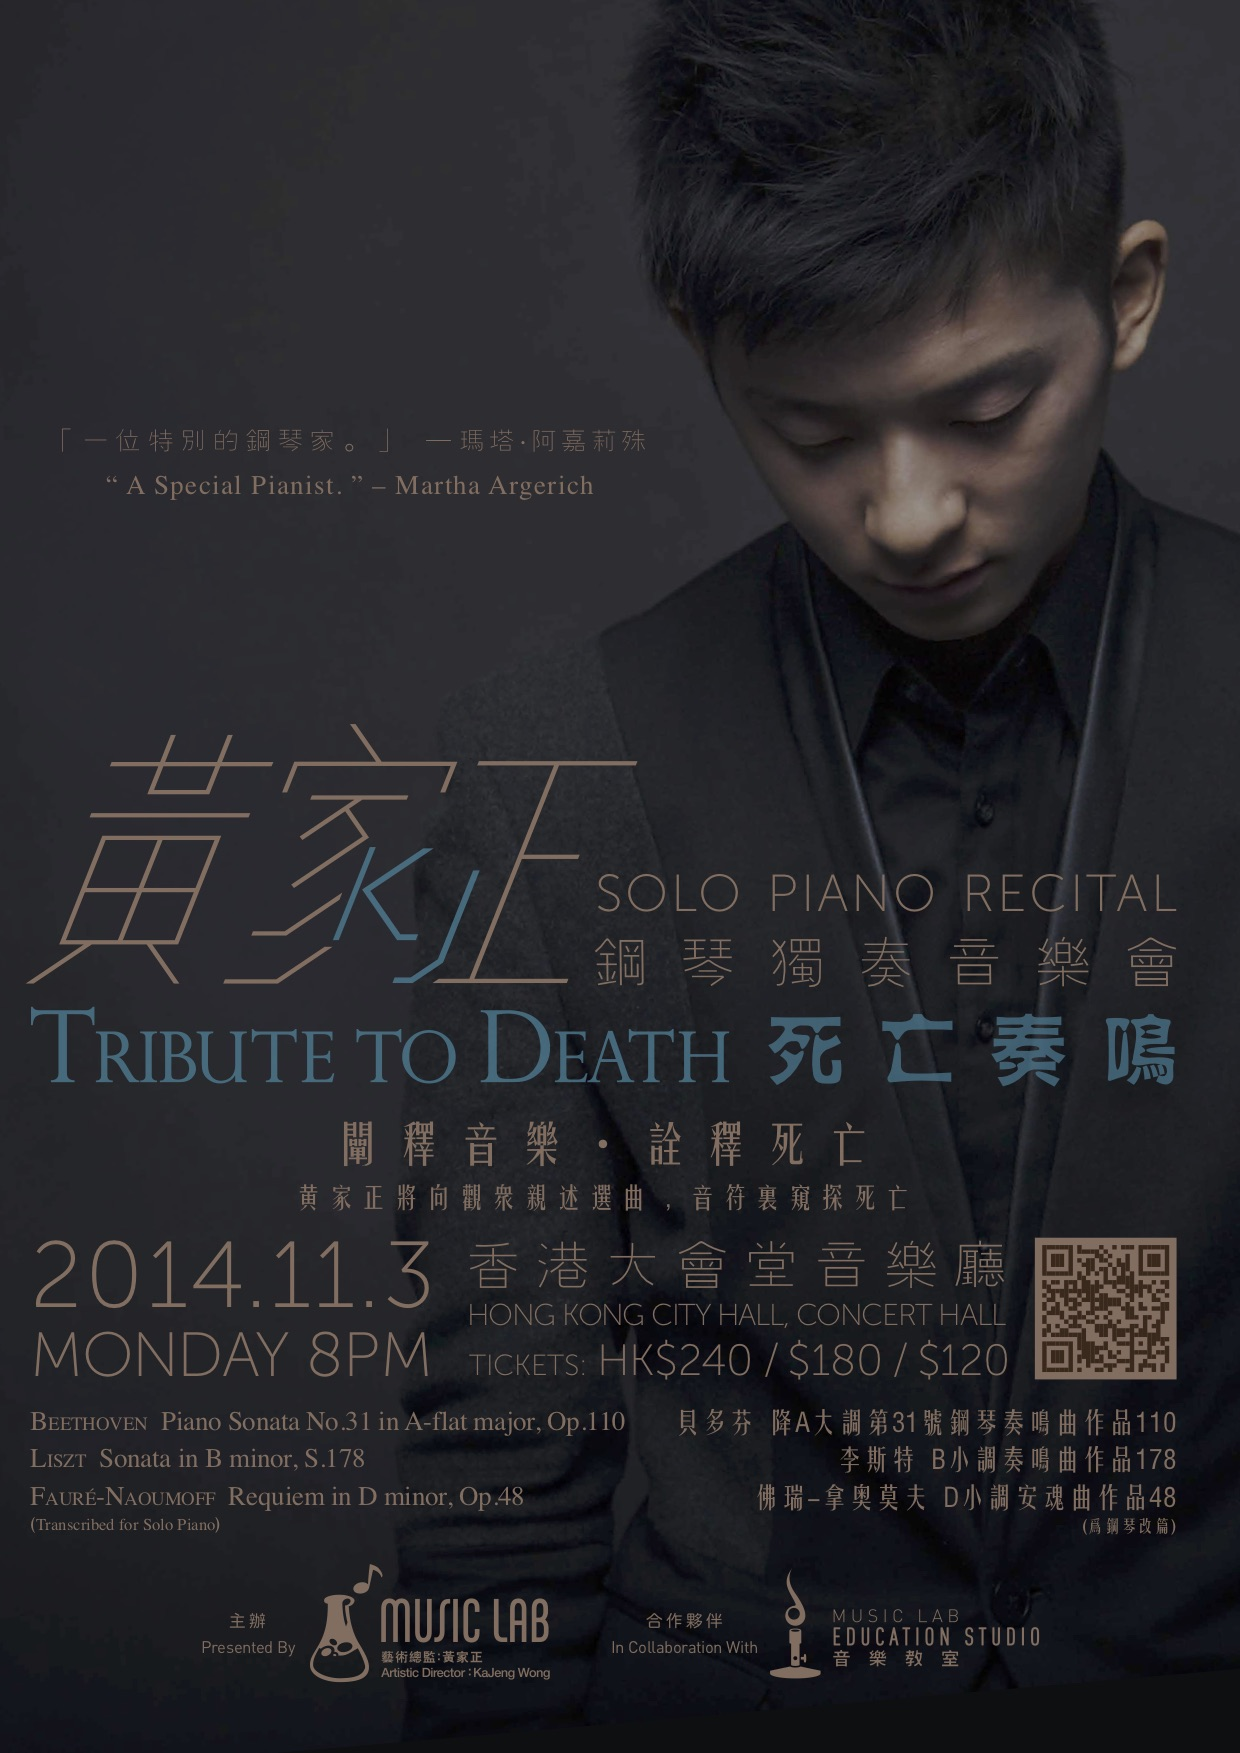 """KJ Solo Piano Recital:Tribute to Death - Death is inevitable, yet a taboo. The mystery of death has formed our culture, haunted our civilization, shadowed our existence.Pianist KaJeng Wong brings us an unconventional recital, """"Tribute to Death"""", programming the masterpieces by Beethoven, Liszt and Fauré amongst his sharing on philosophy of life and death.PROGRAMMEPiano Sonata No.31 in A-flat major, Op.110 – BeethovenSonata in B minor, S.178 – LisztRequiem in D minor, Op.48 (Transcribed for Solo Piano) – Fauré-Naoumoff"""